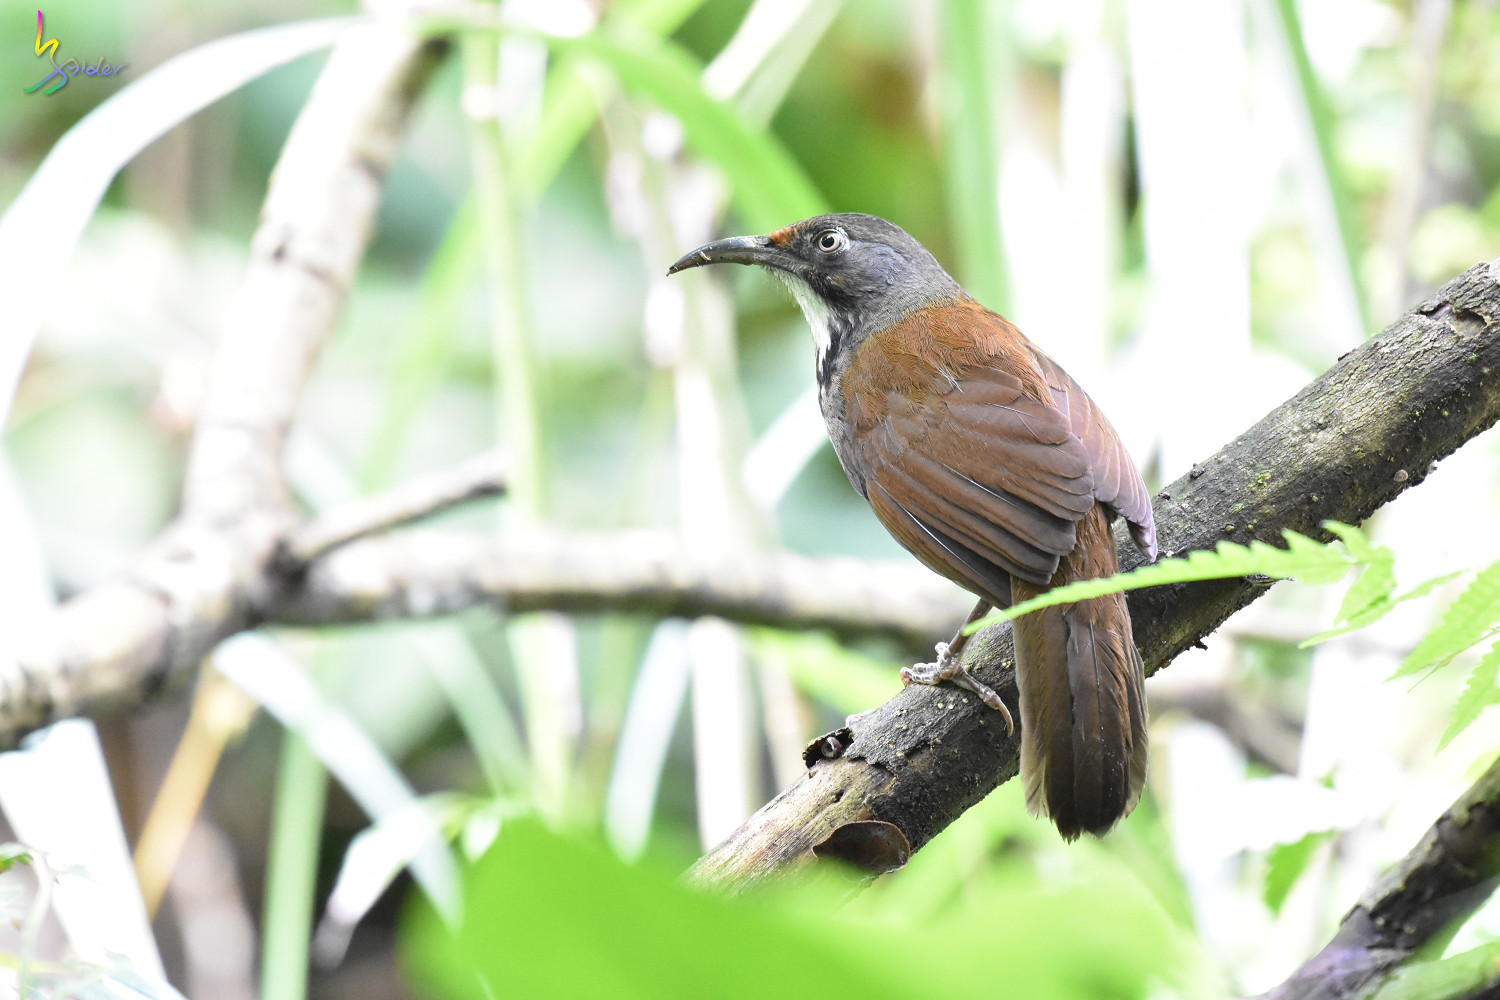 Rusty-cheeked_Scimitar-Babbler_0710